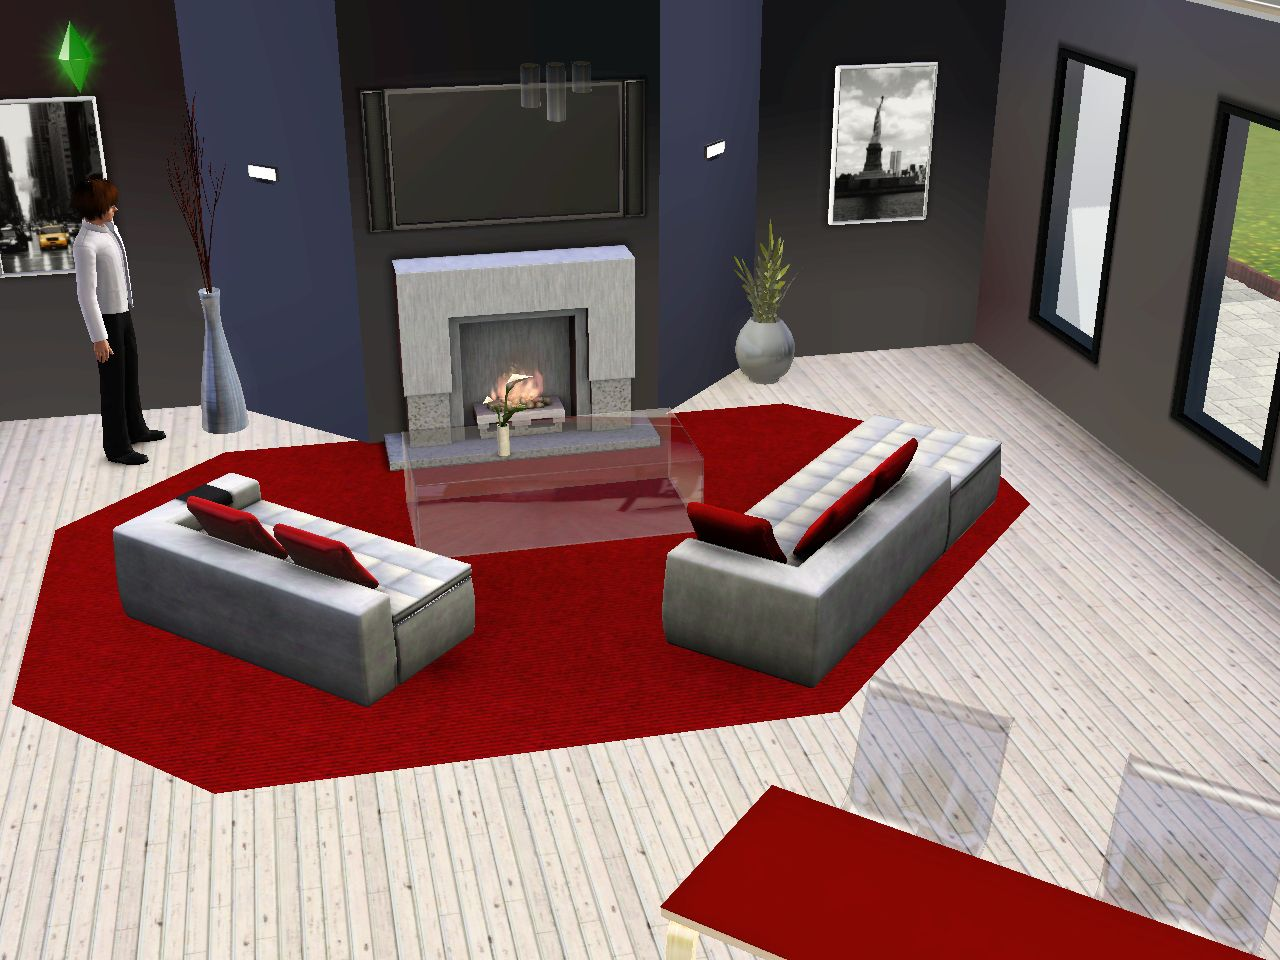 moquette rouge salon. Black Bedroom Furniture Sets. Home Design Ideas